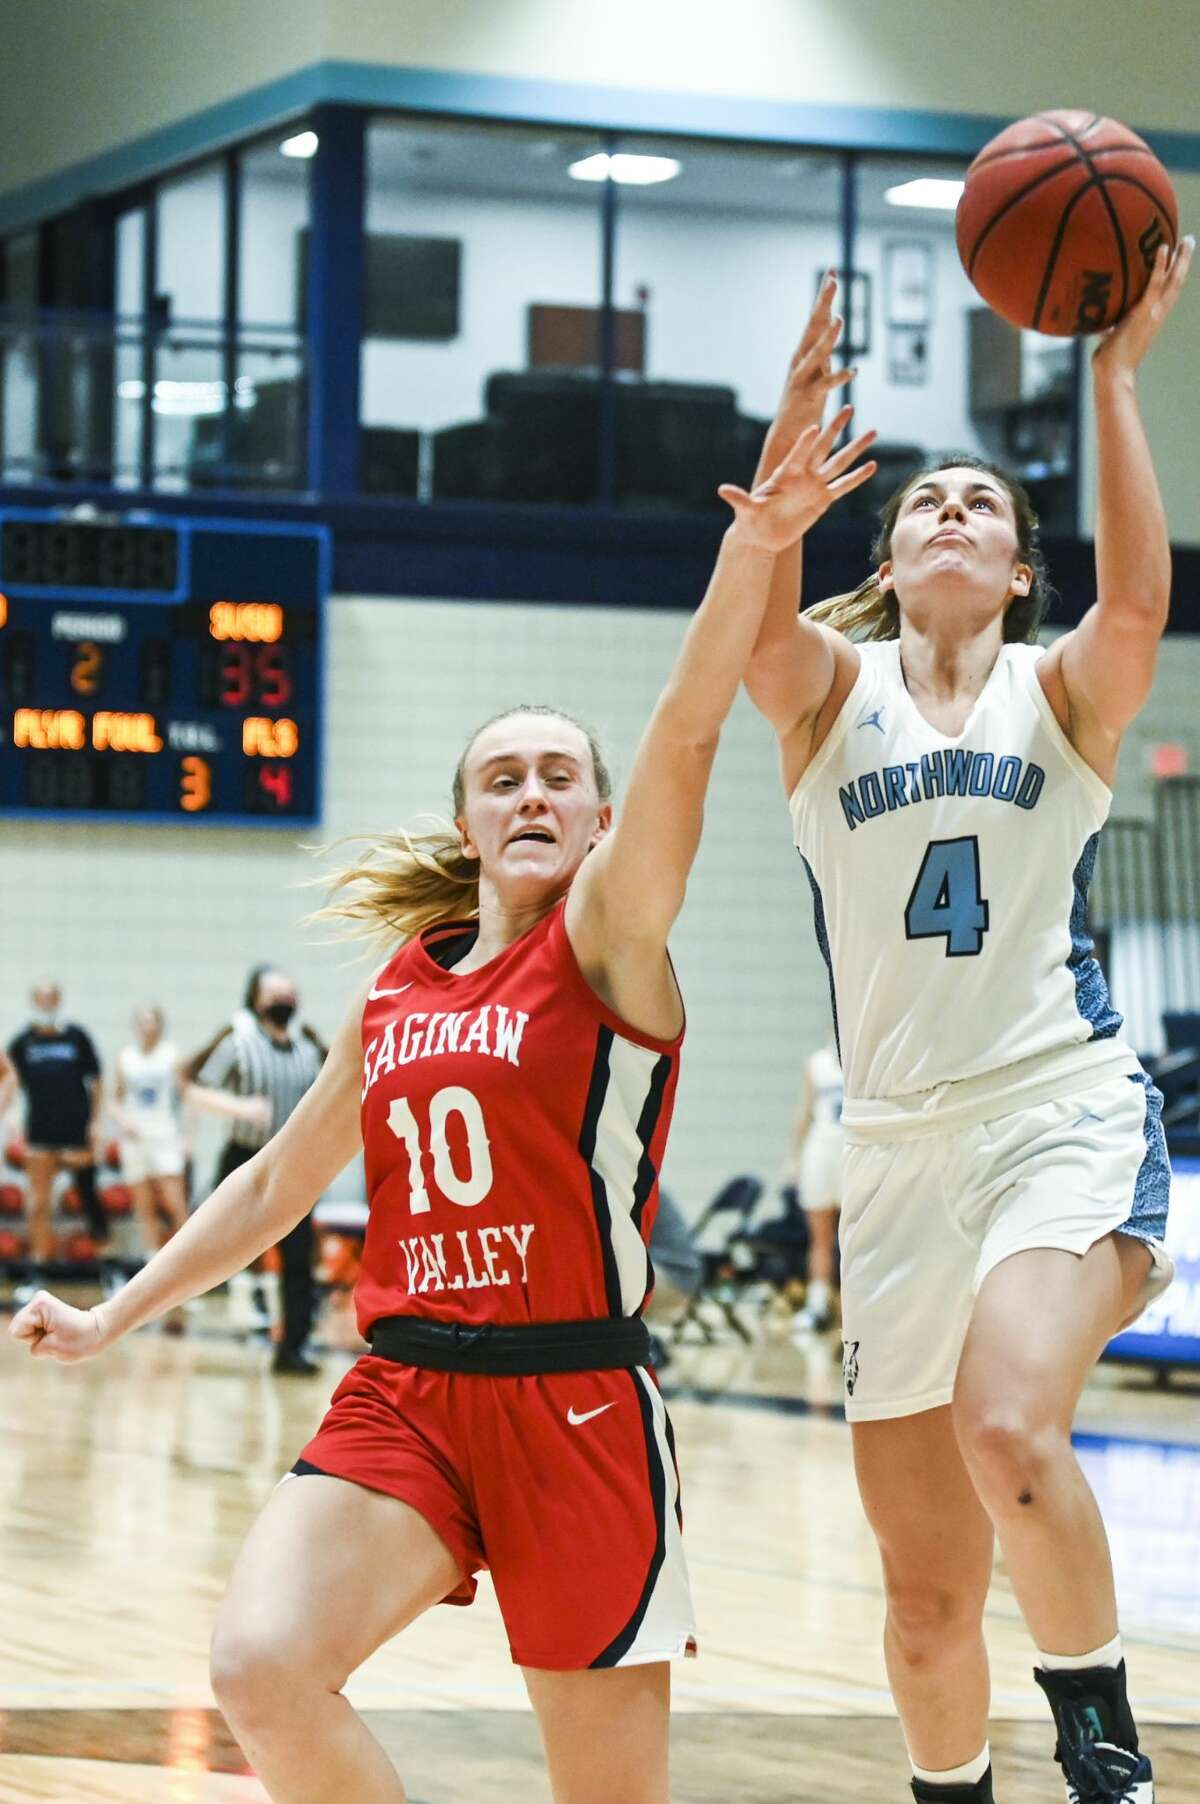 Northwood's Ali Keyser drives to the basket during a game against SVSU Tuesday, Jan. 26, 2021 at Northwood. (Adam Ferman/for the Daily News)